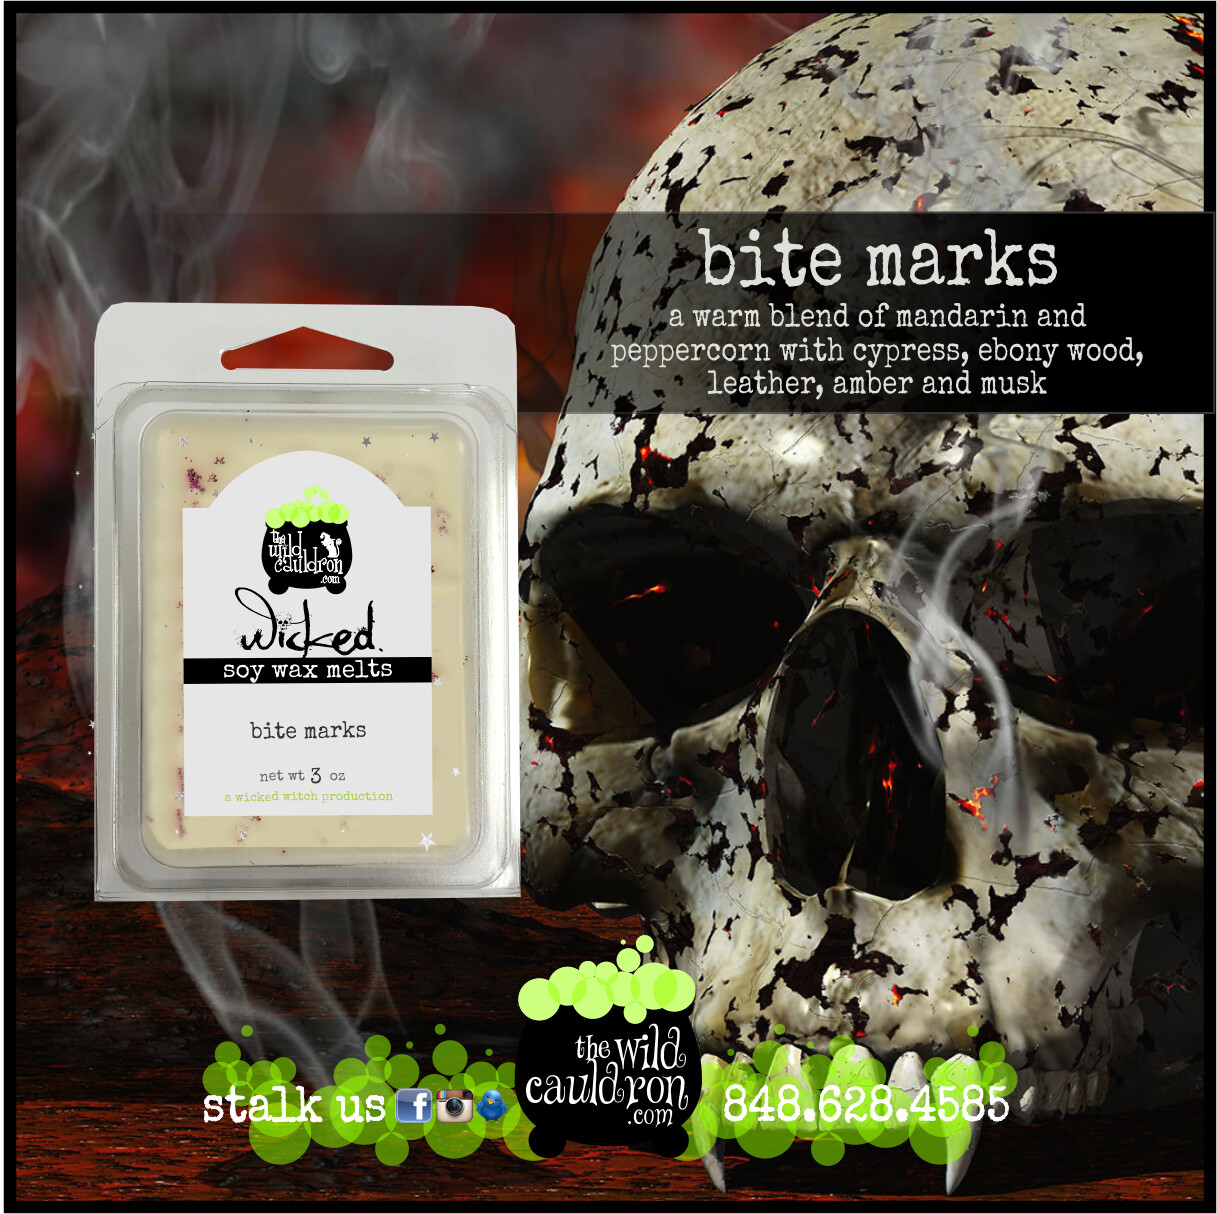 Bite Marks Wicked Wax Melts